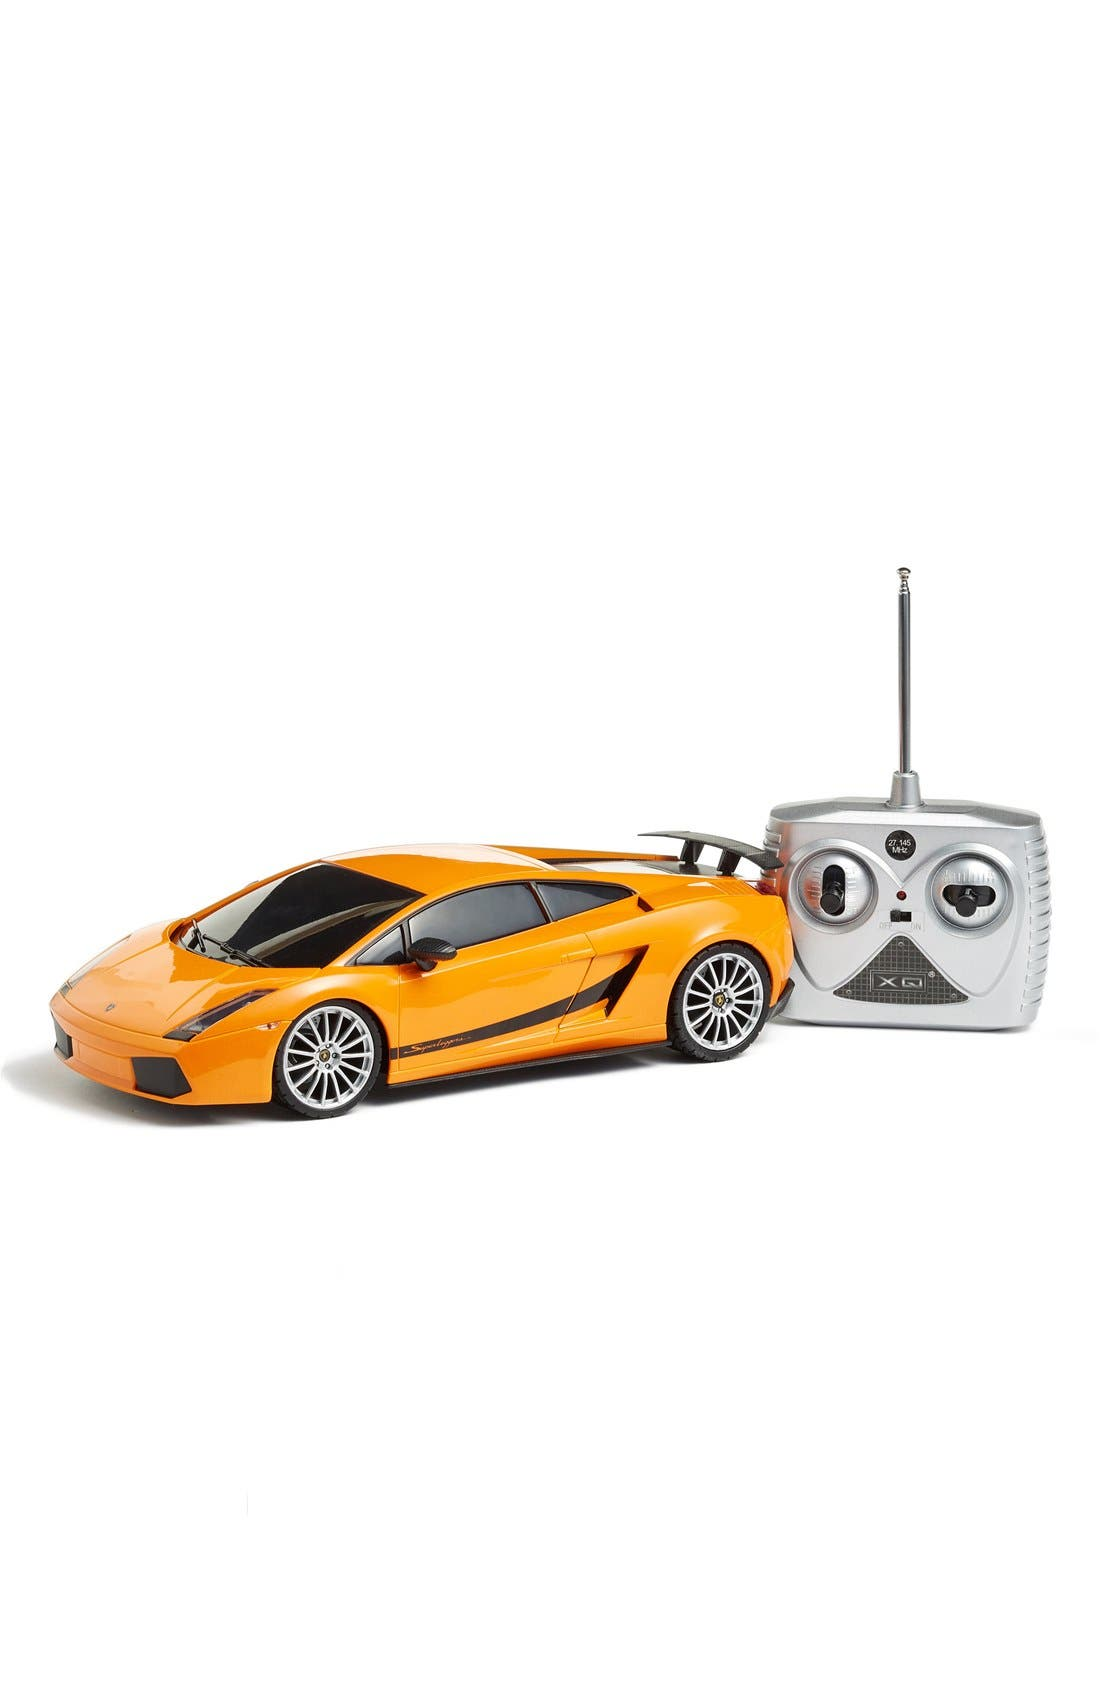 Lamborghini Superleggera 1:18 Scale Remote Control Car Toy,                         Main,                         color, Orange